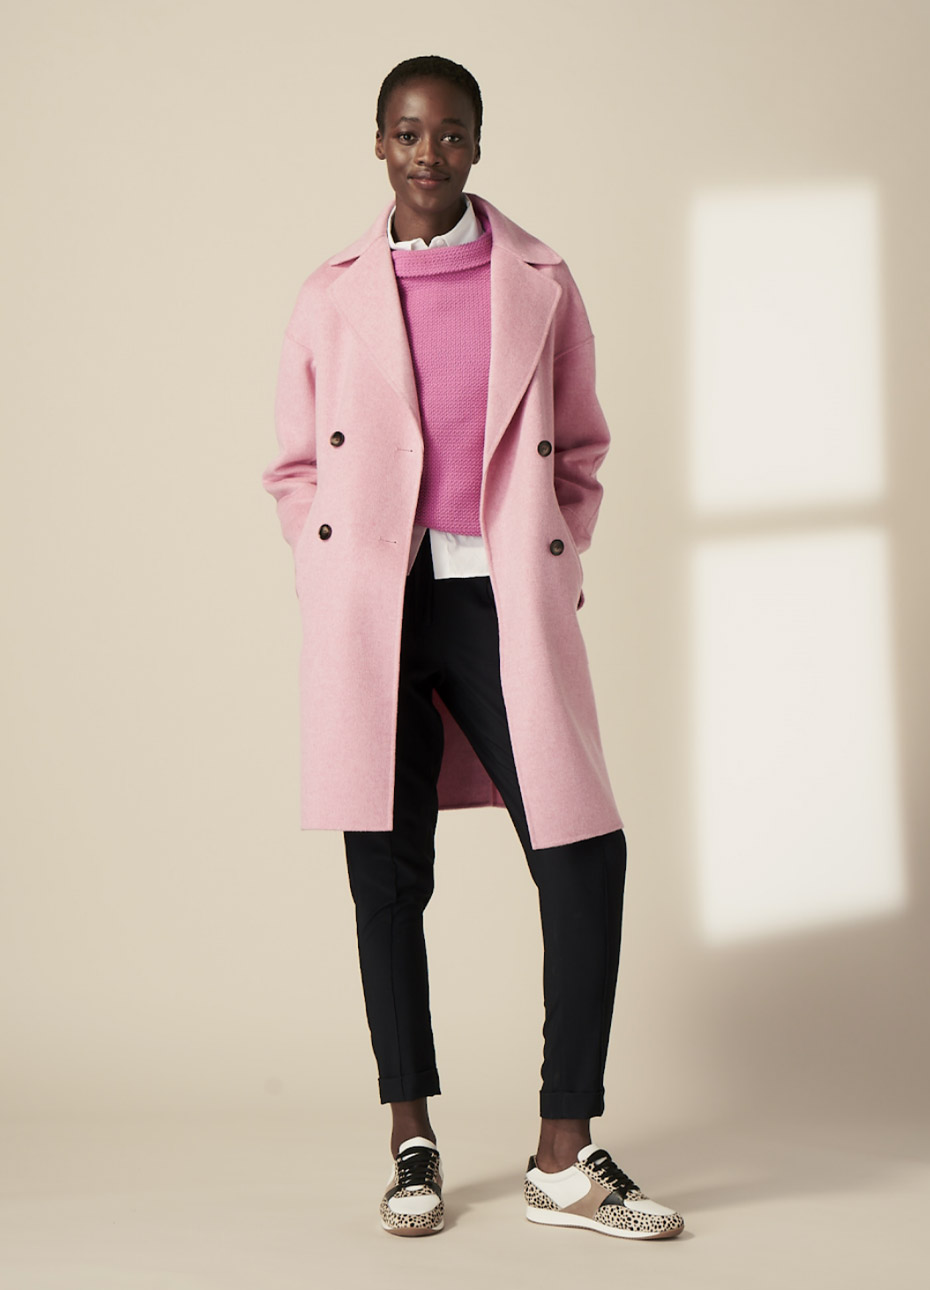 Hobbs model wearing a pink pea coat over a pink wool jumper and a white shirt, styled with black jeans and trainers.